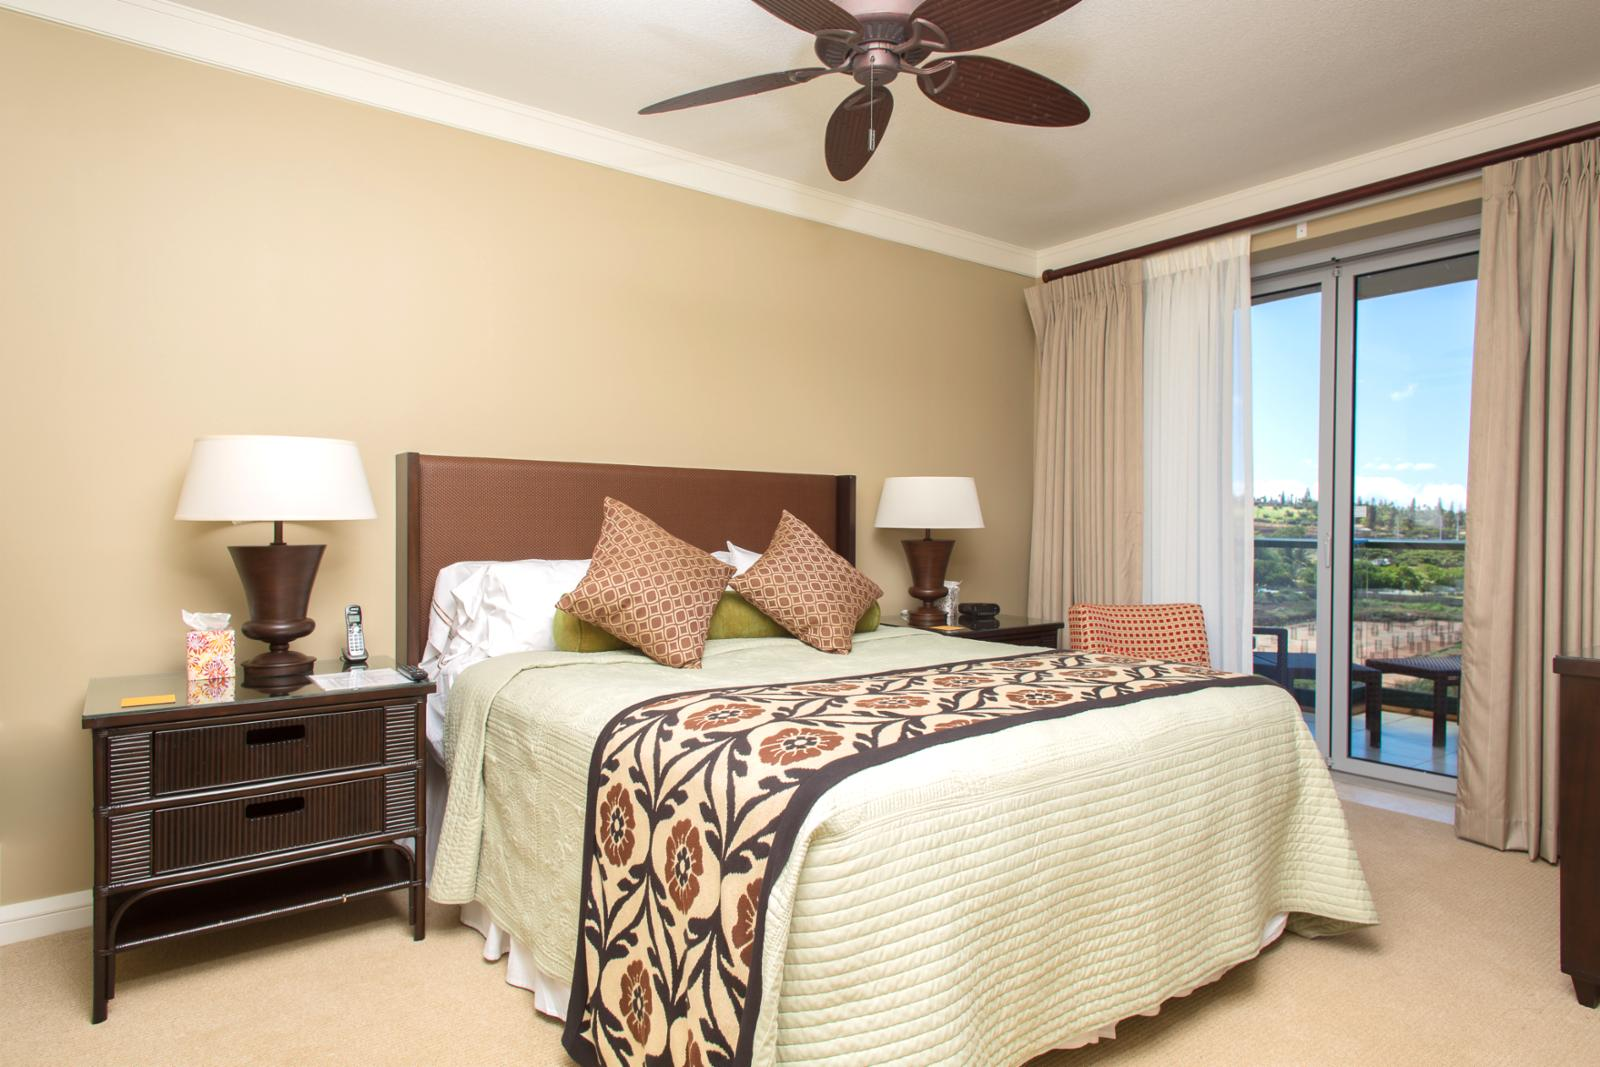 Large Master Bedroom With Plush King Size Bed To Relax In